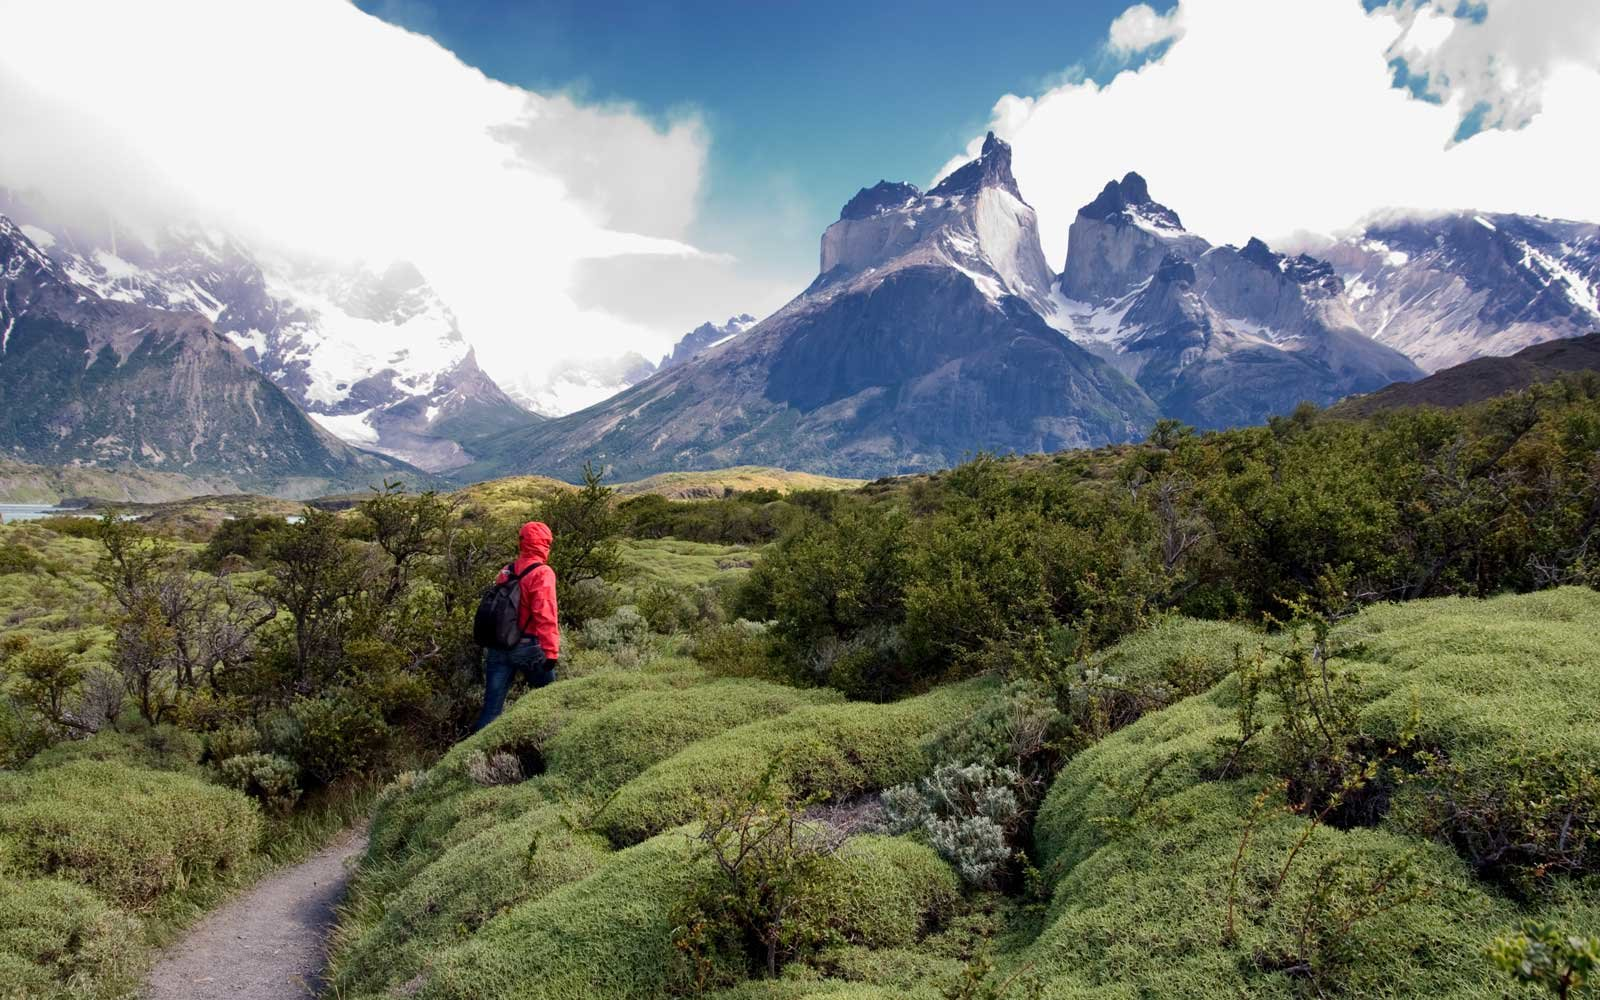 The Route of the Parks of Patagonia will connect 17 of Chile's national parks in one trail.